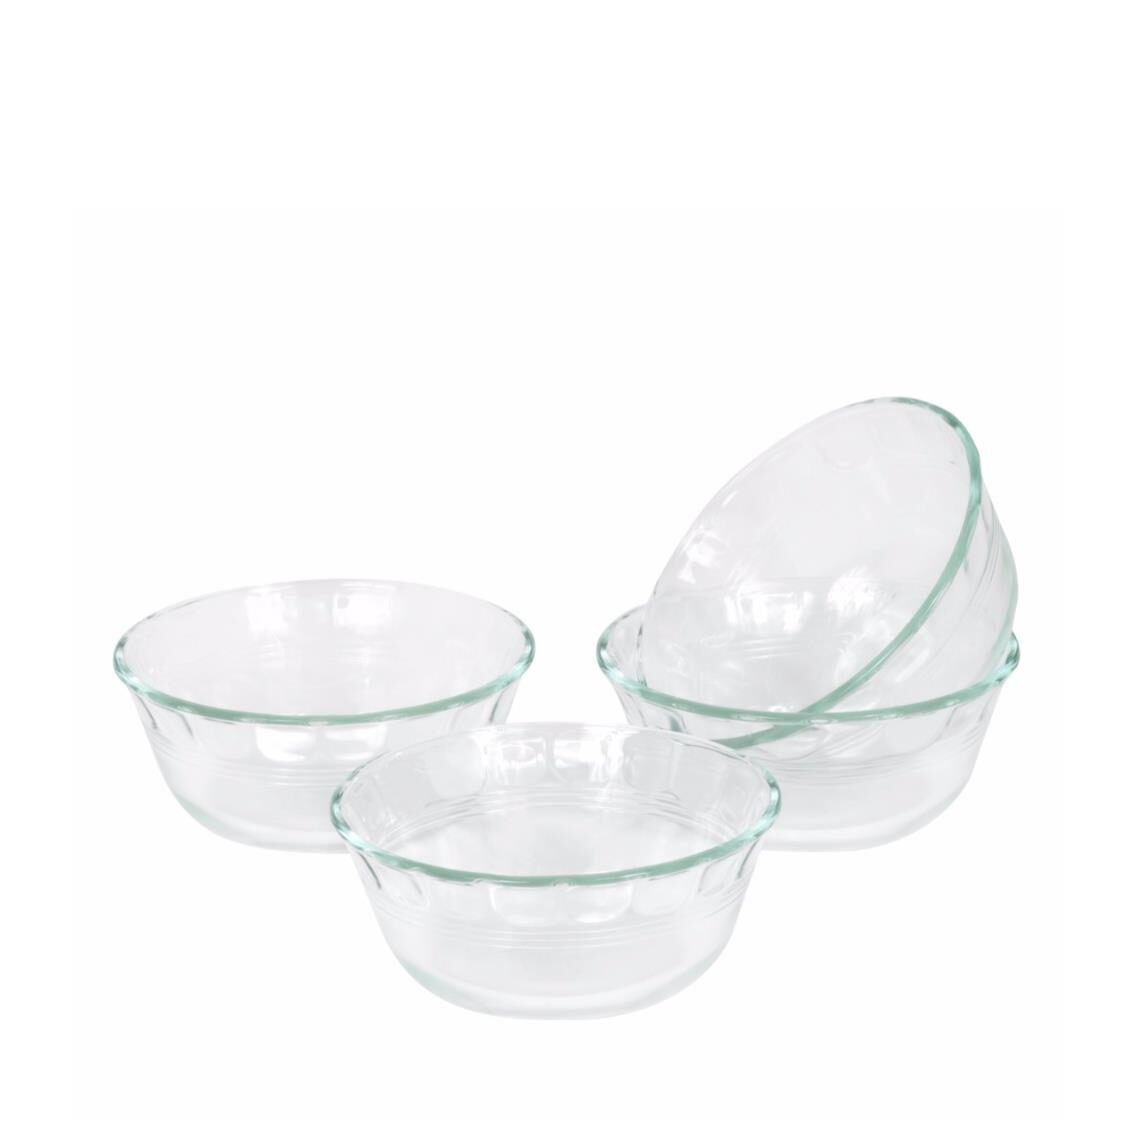 Pyrex Deep Pie Plate 4 in a pack